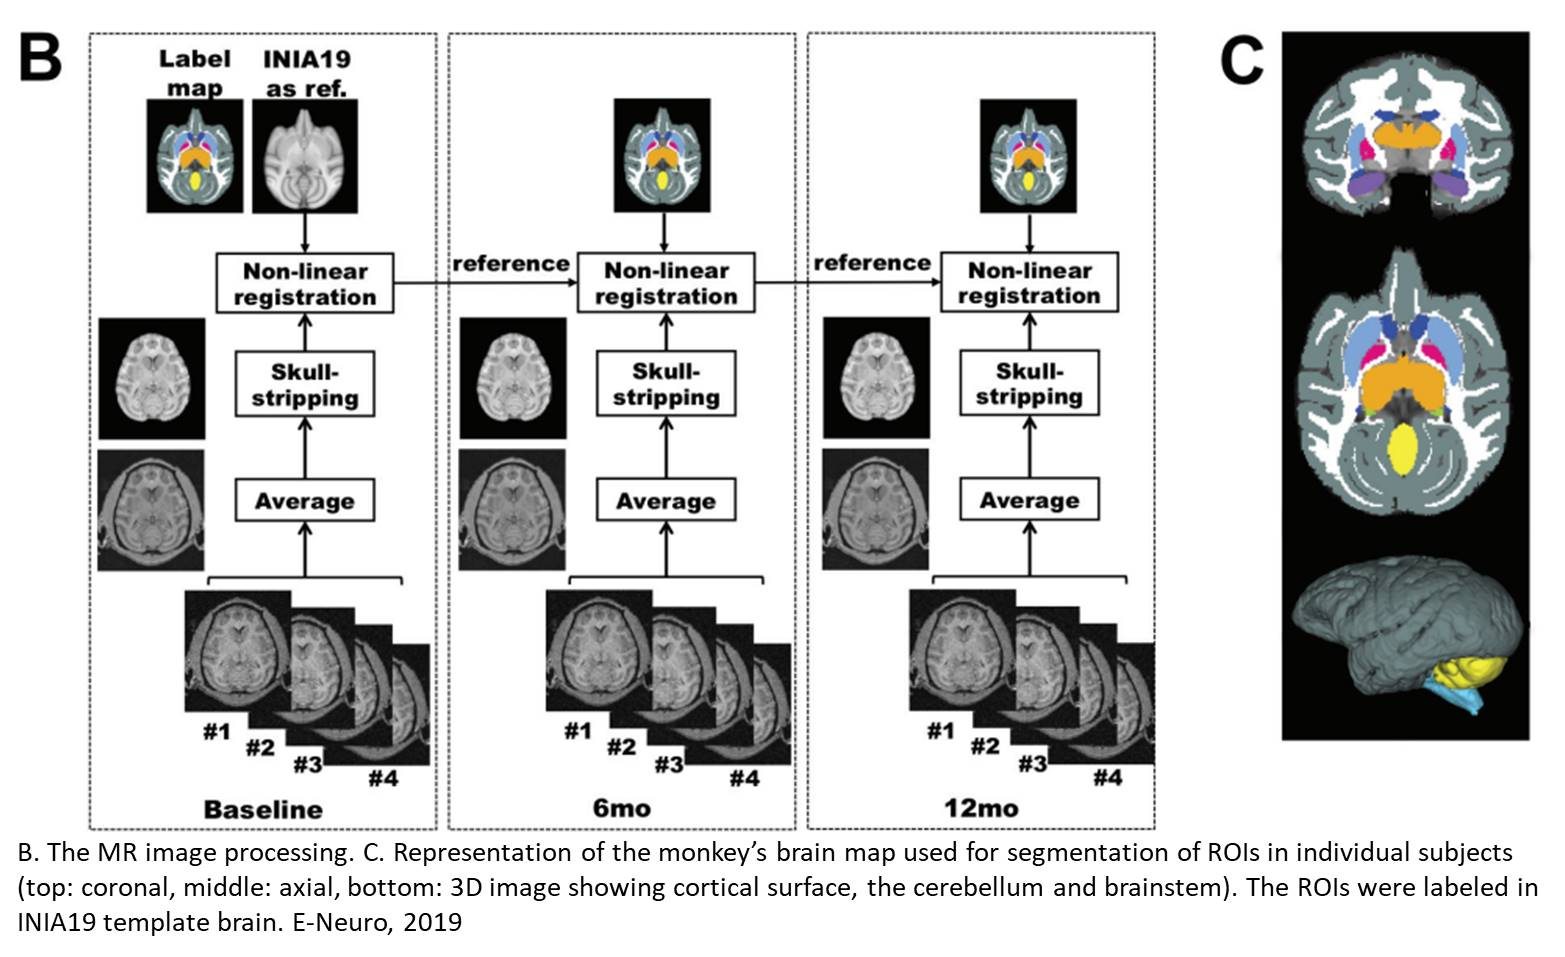 Chronic alcohol drinking slows brain development in adolescent and young adult non-human primates